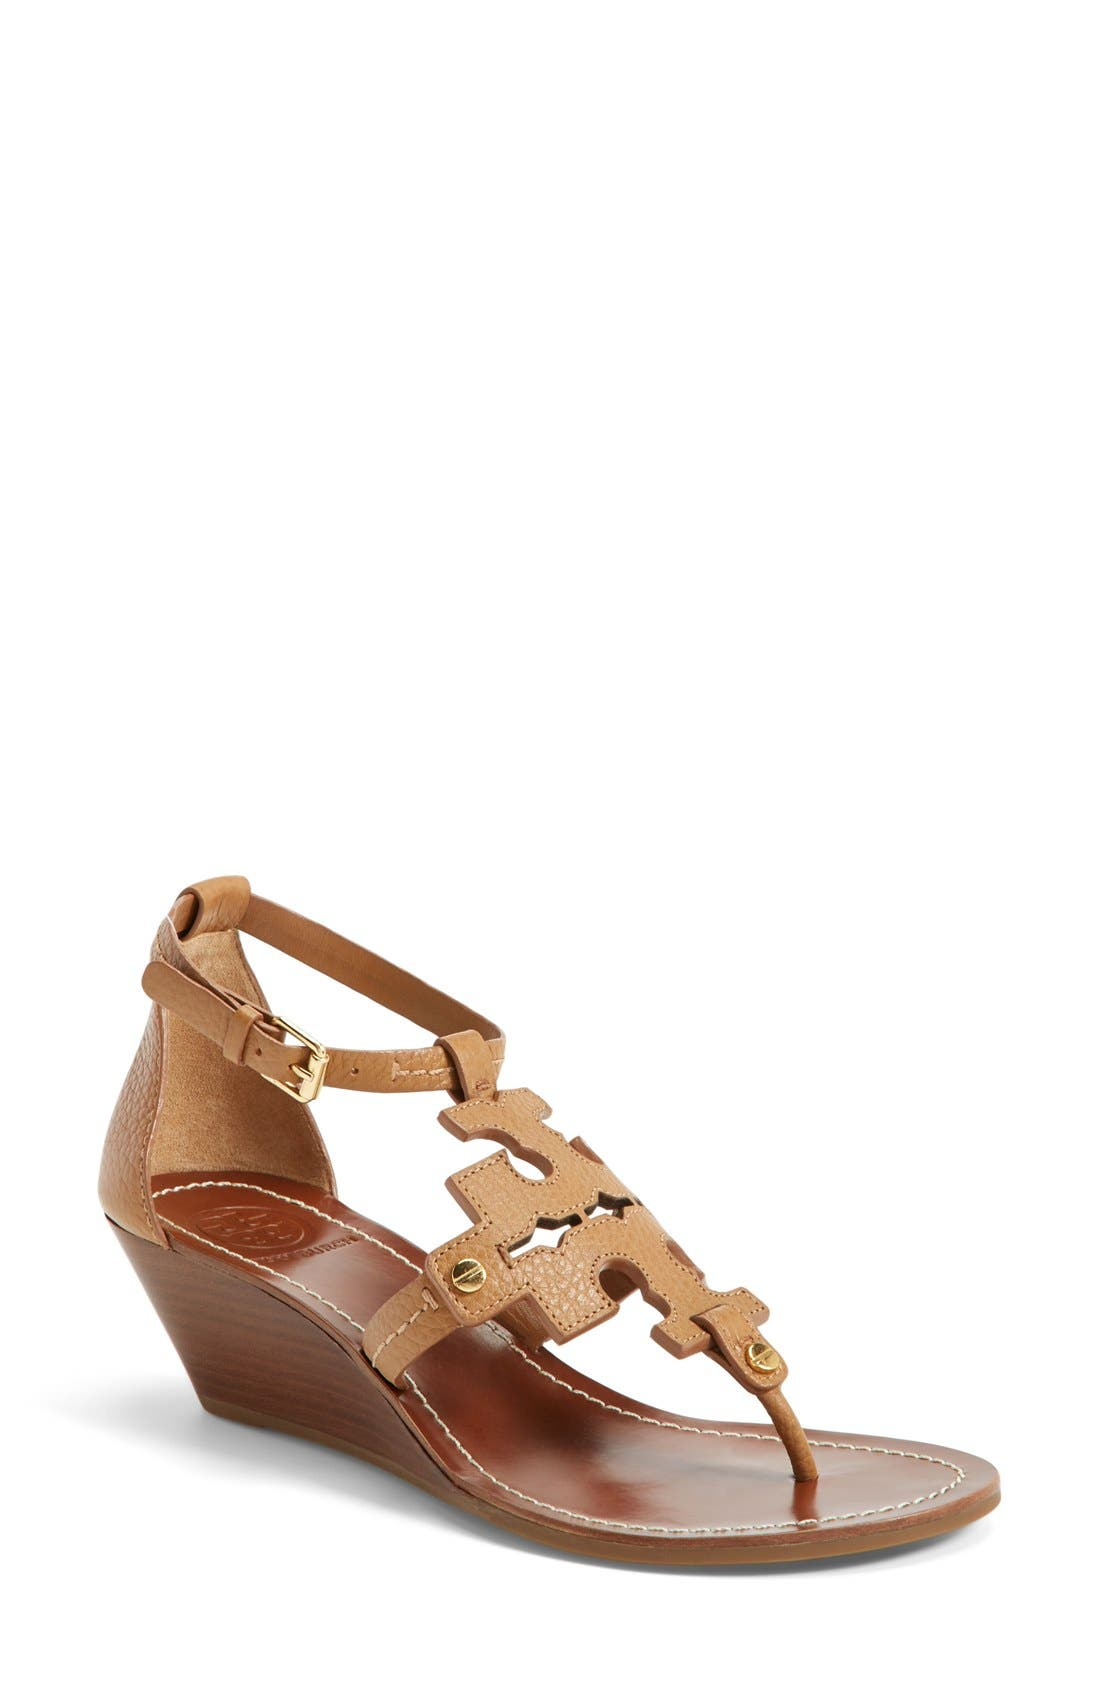 Alternate Image 1 Selected - Tory Burch 'Chandler' Wedge Leather Sandal (Women)